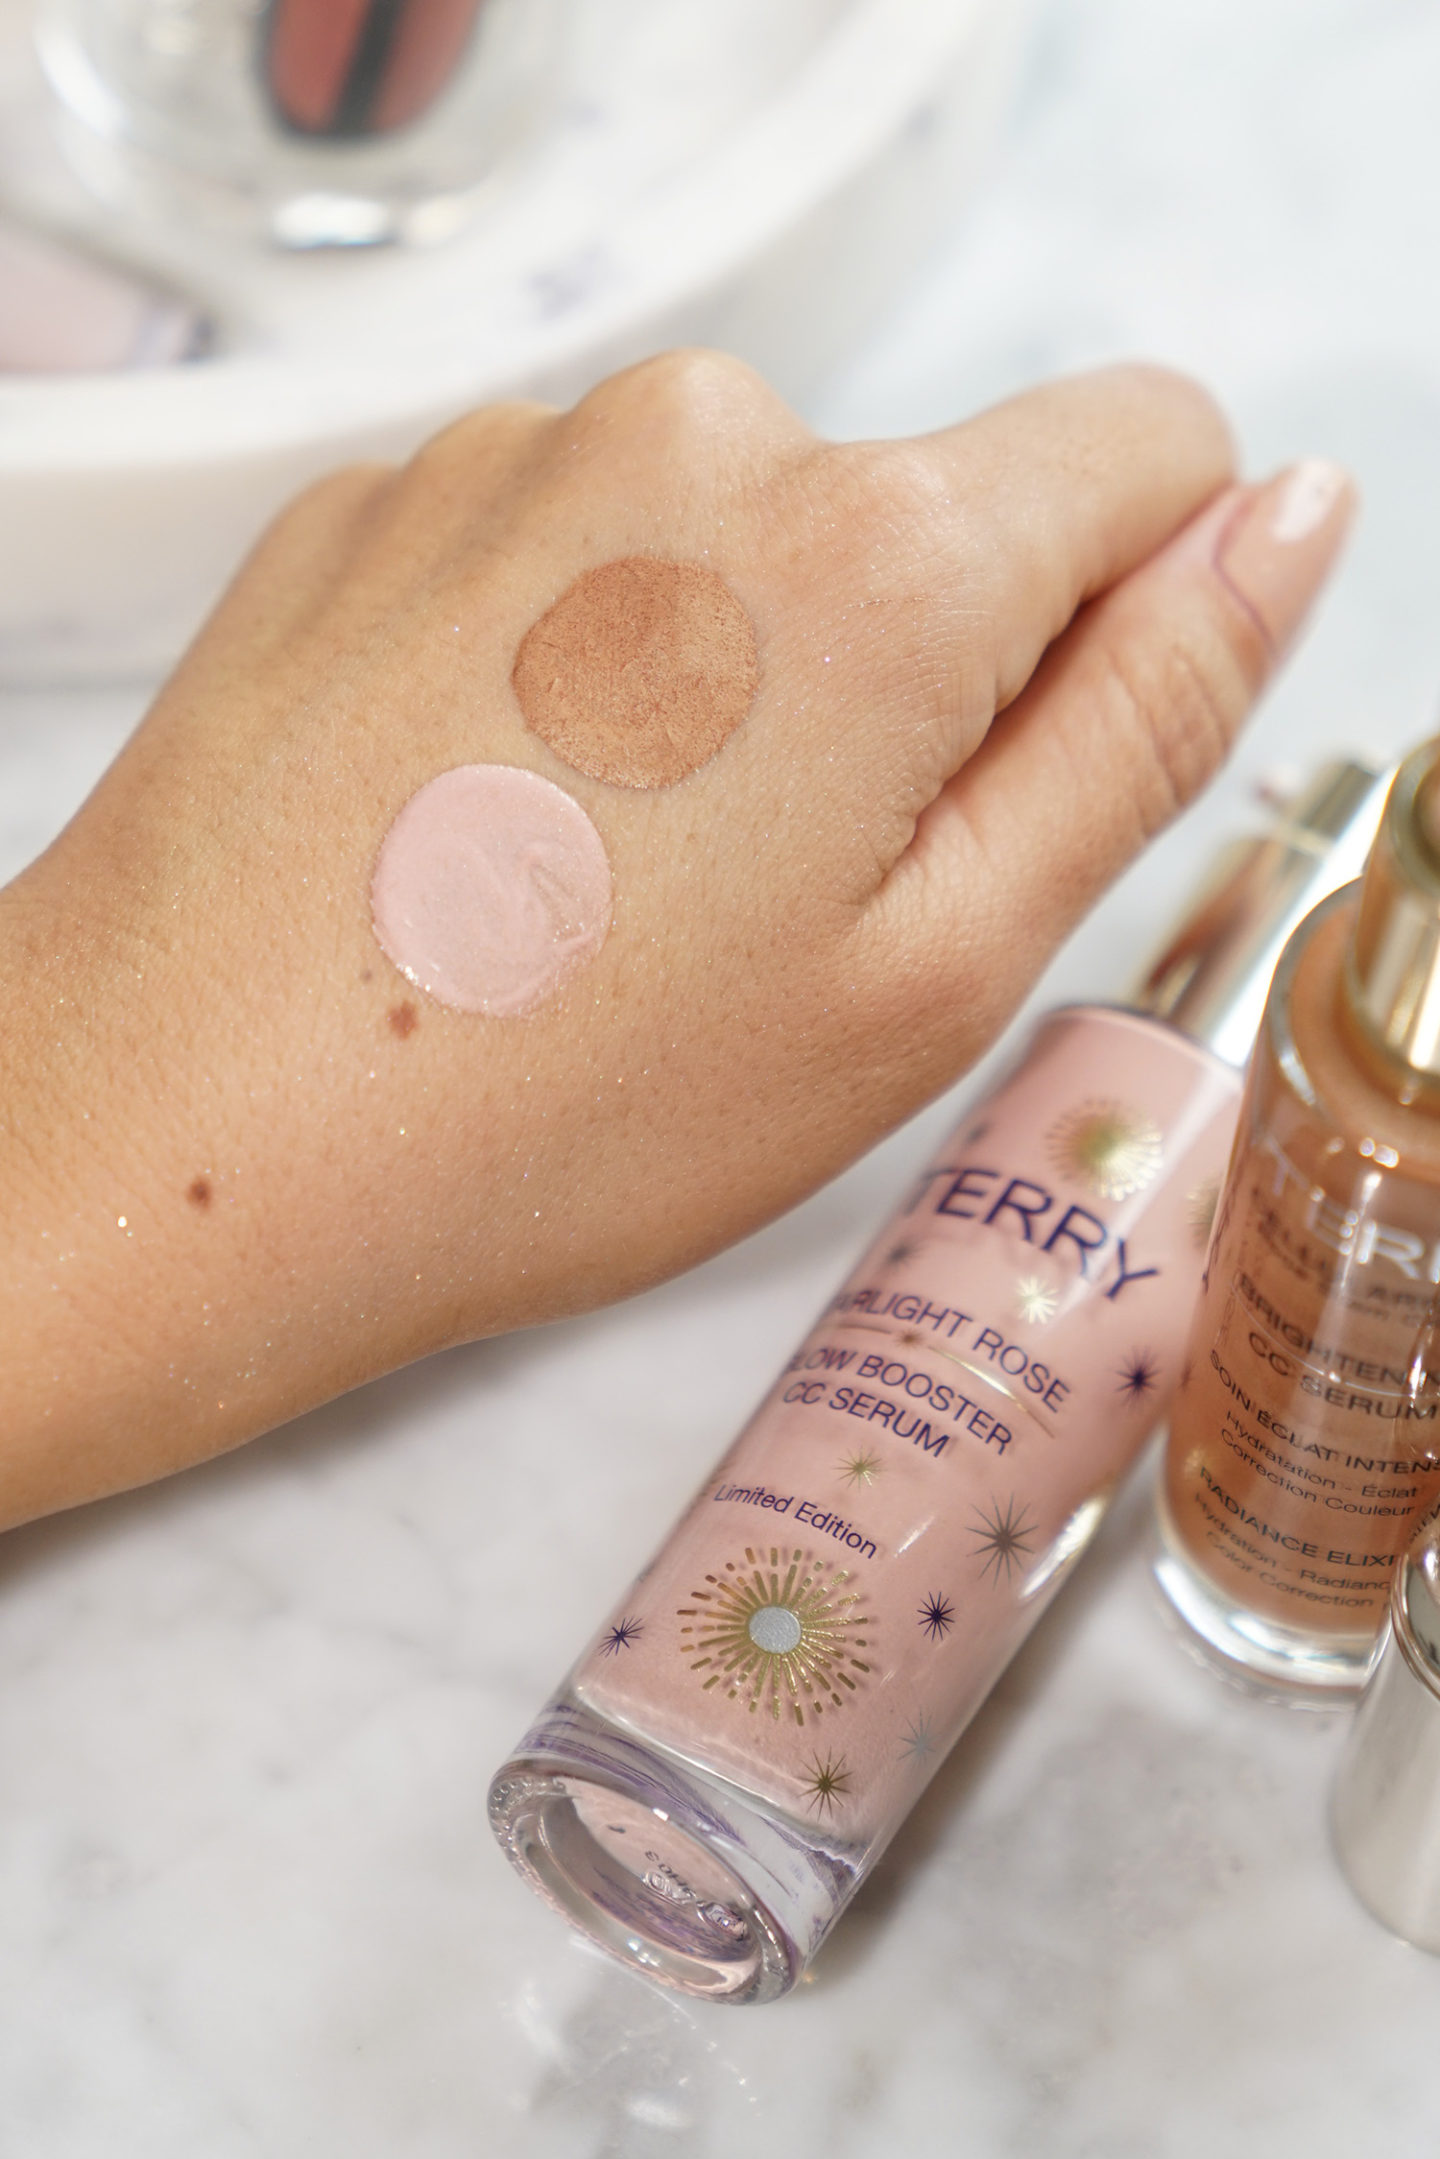 Par Terry CC Serums Échantillons Starlight Rose et Sunny Flash